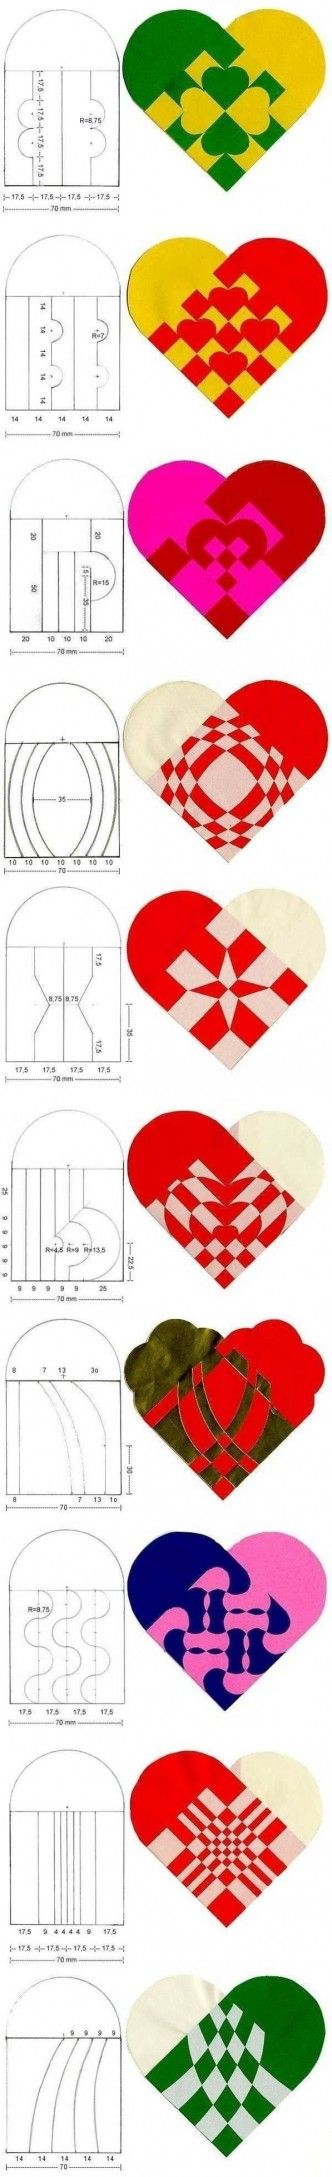 DIY Fabulous Heart Patterns DIY Projects